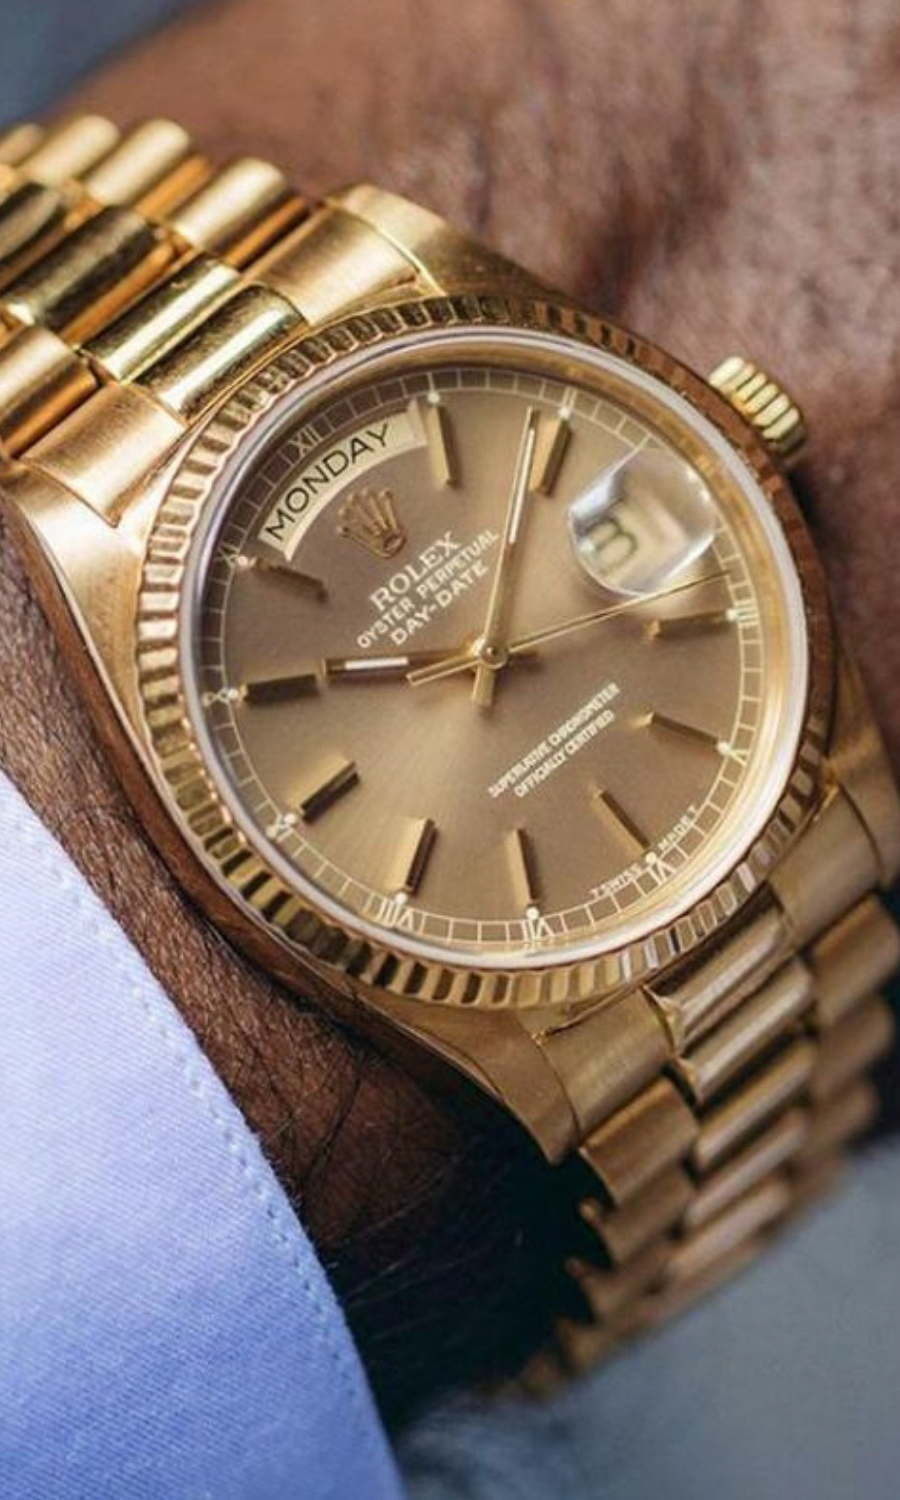 Awesome rolex watches for men with full day calendar. This watch has self winding automatic mechani